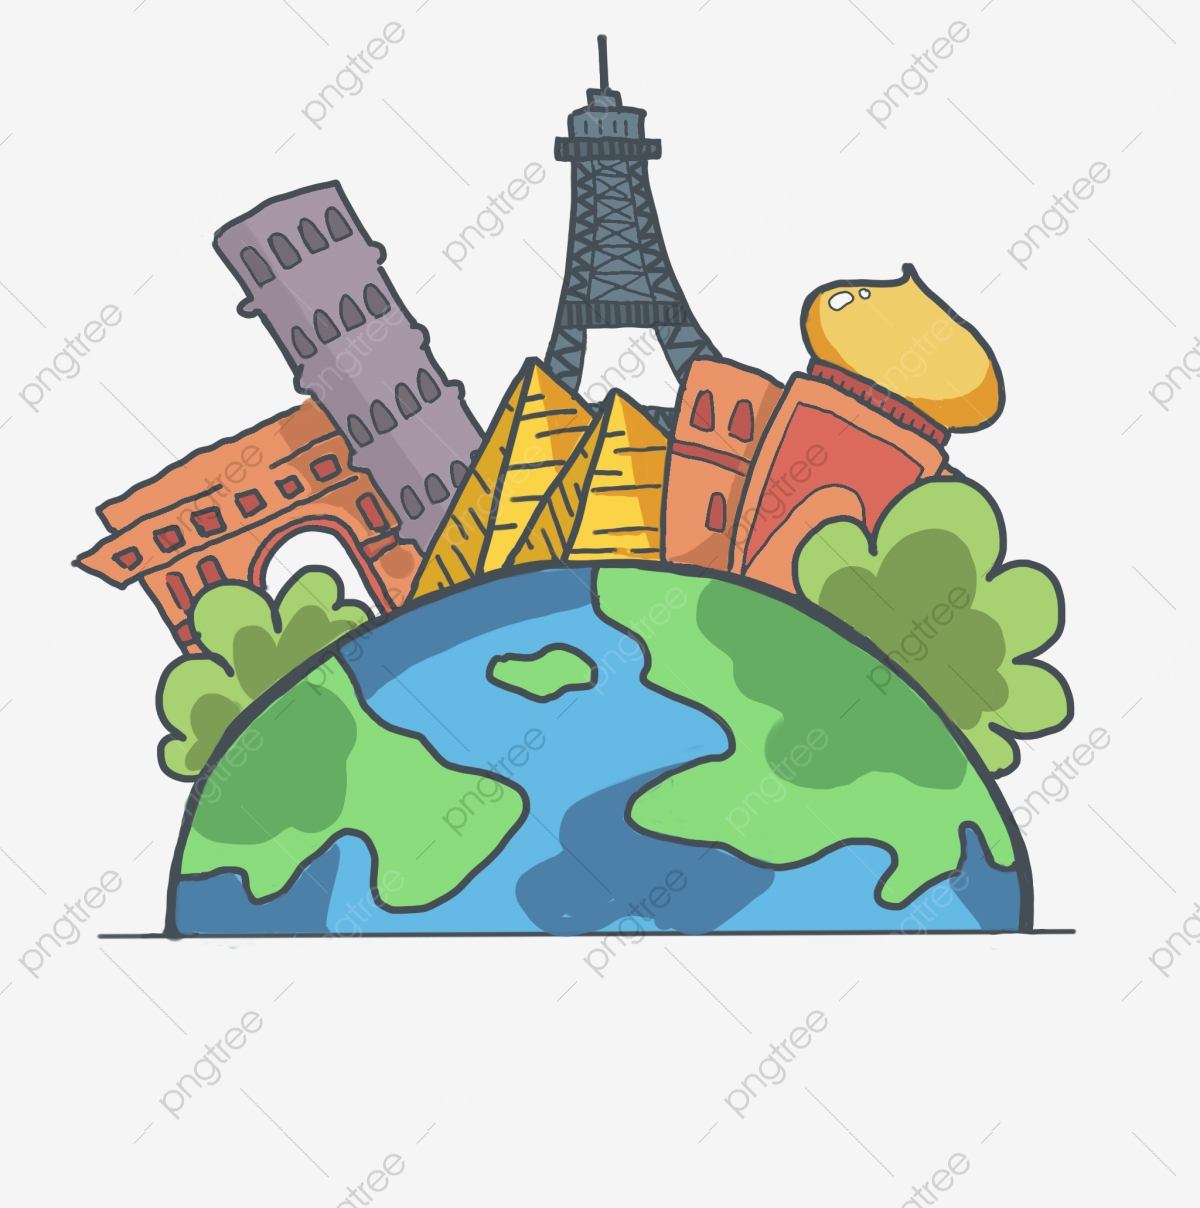 Travel Theme Travel Around The World Cartoon Illustration.